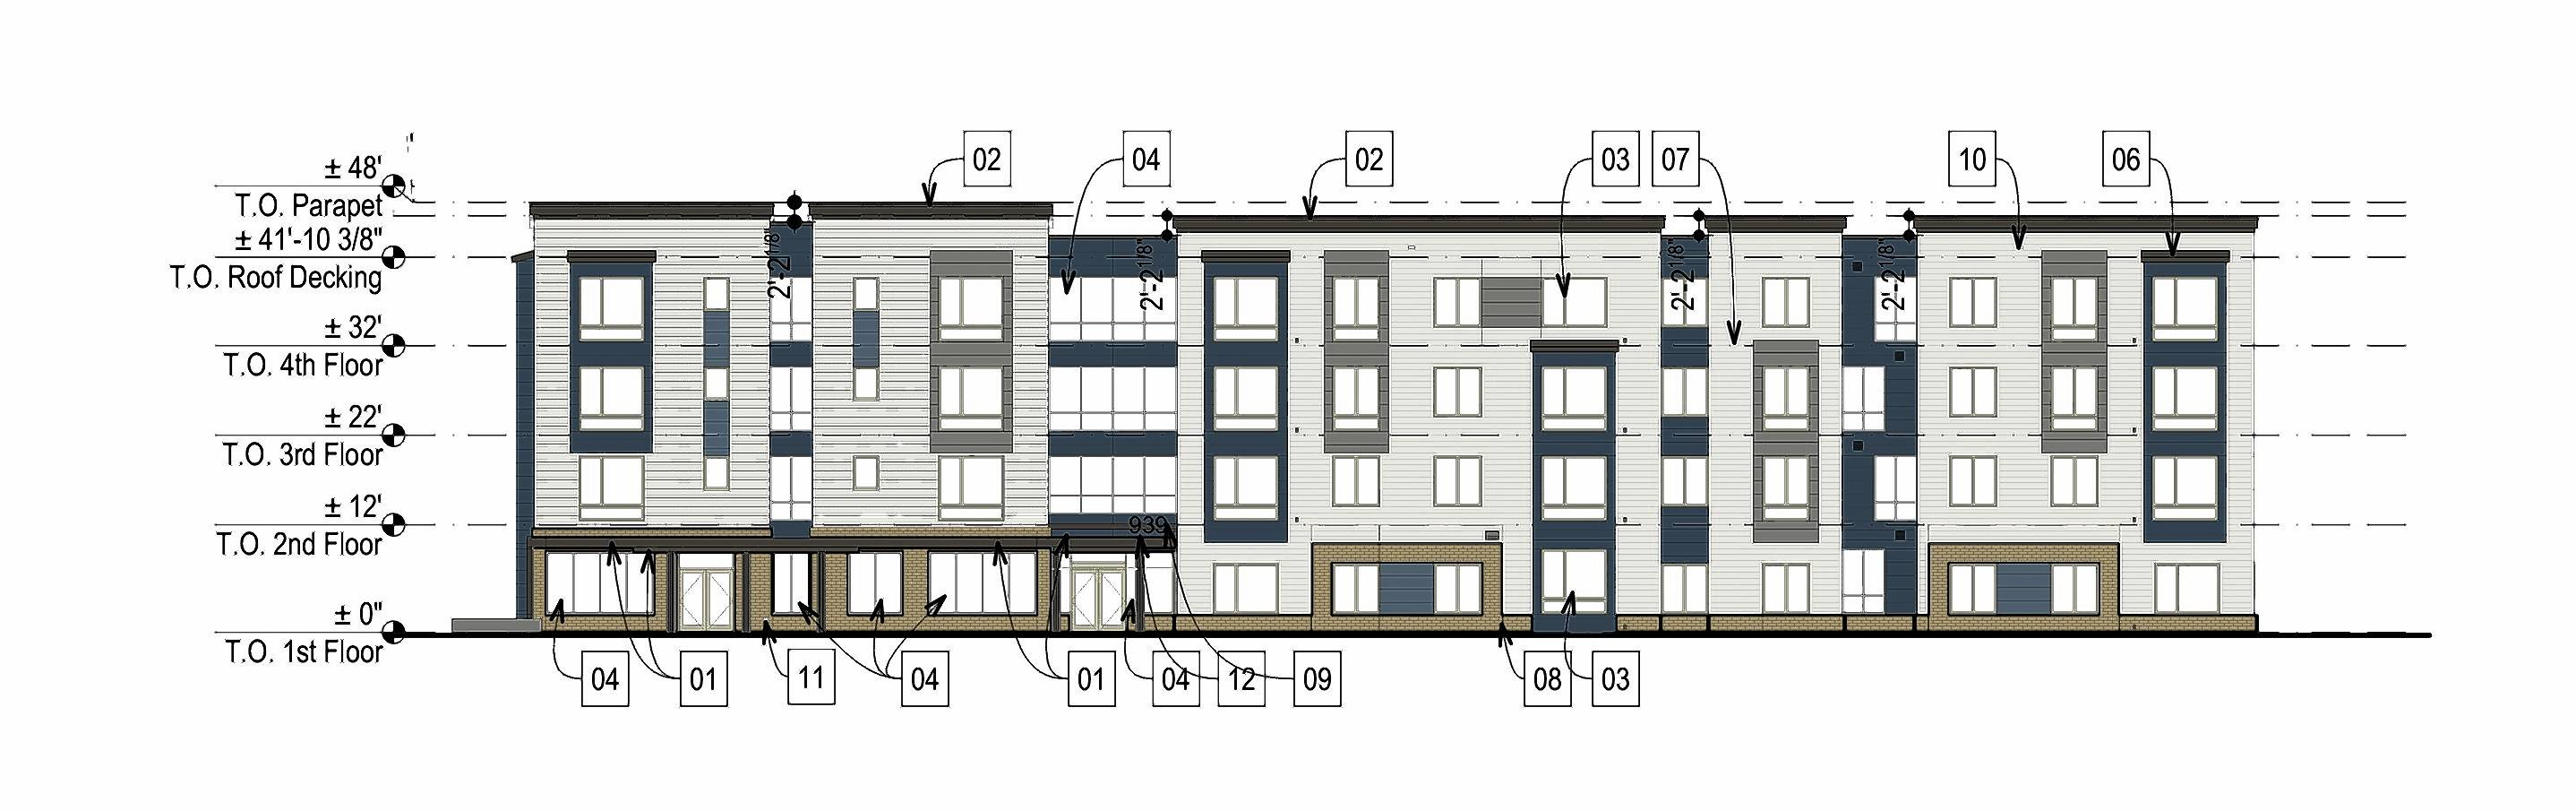 Construction is expected to begin early this year on a 61-unit affordable senior housing development at 969 W. Main St. in West Dundee.